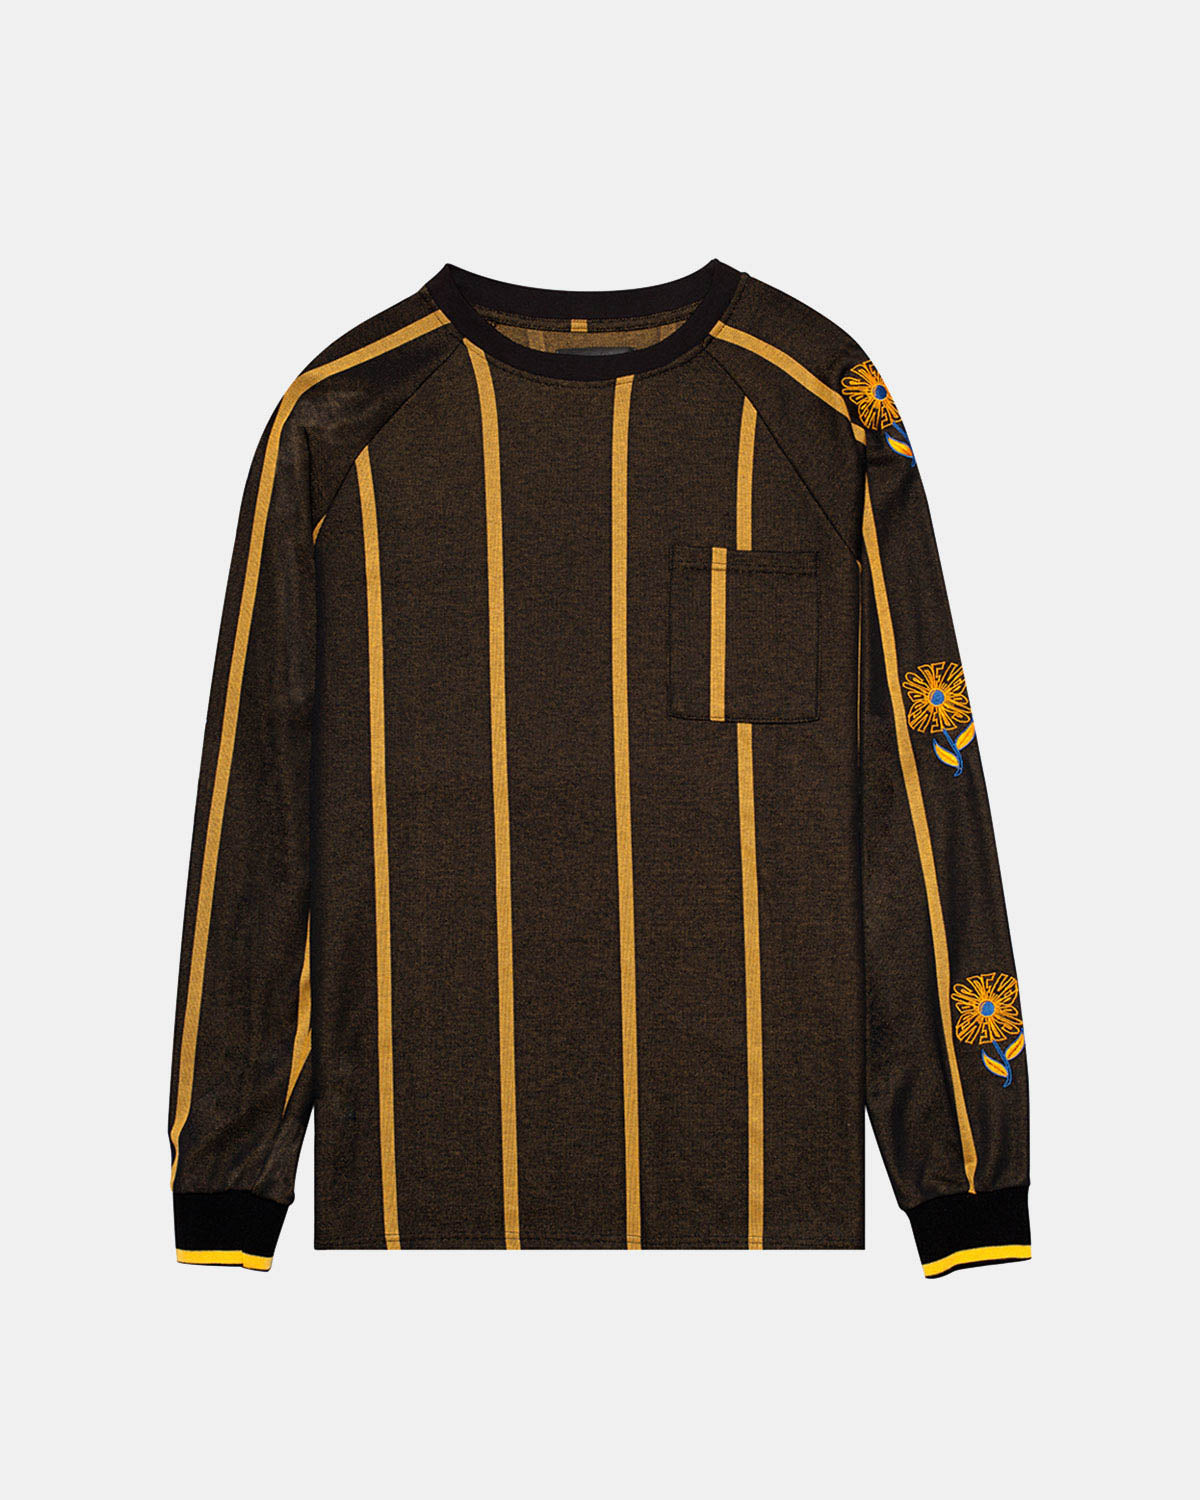 Pas de Mer - Wrong Place Long Sleeve Tee (Black | Yellow)